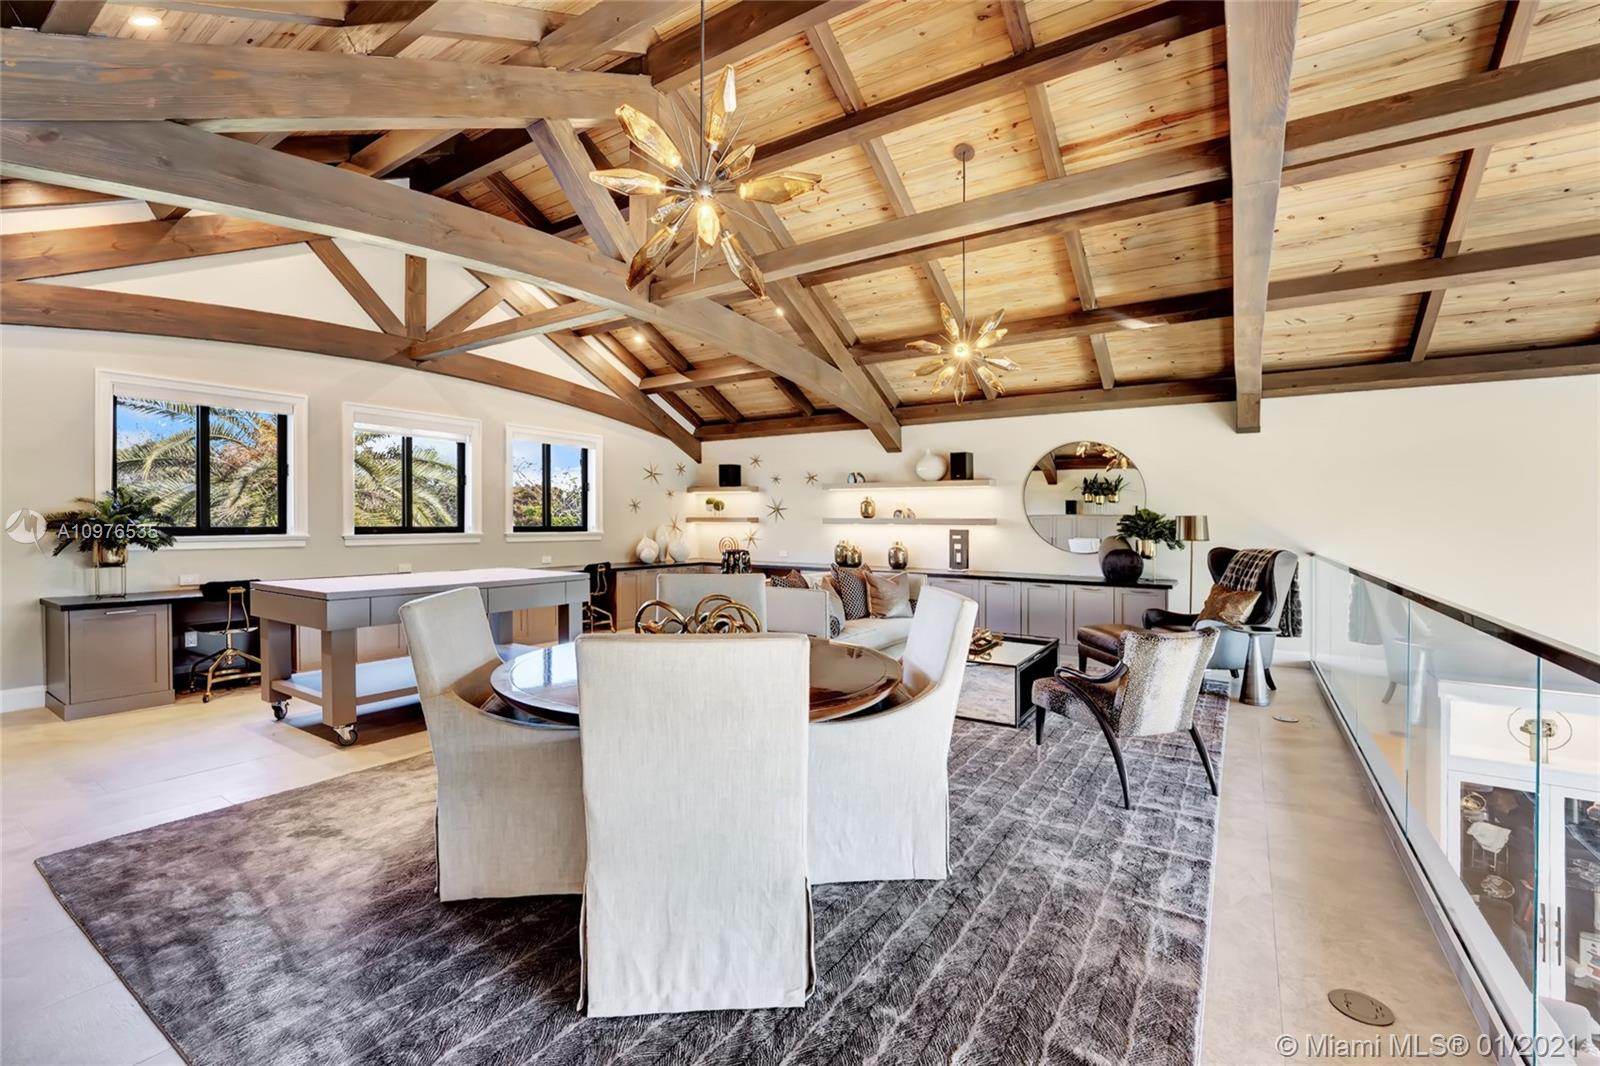 Loft area. Tongue and groove paneling and coffered ceilings add exquisite features to this mansion.